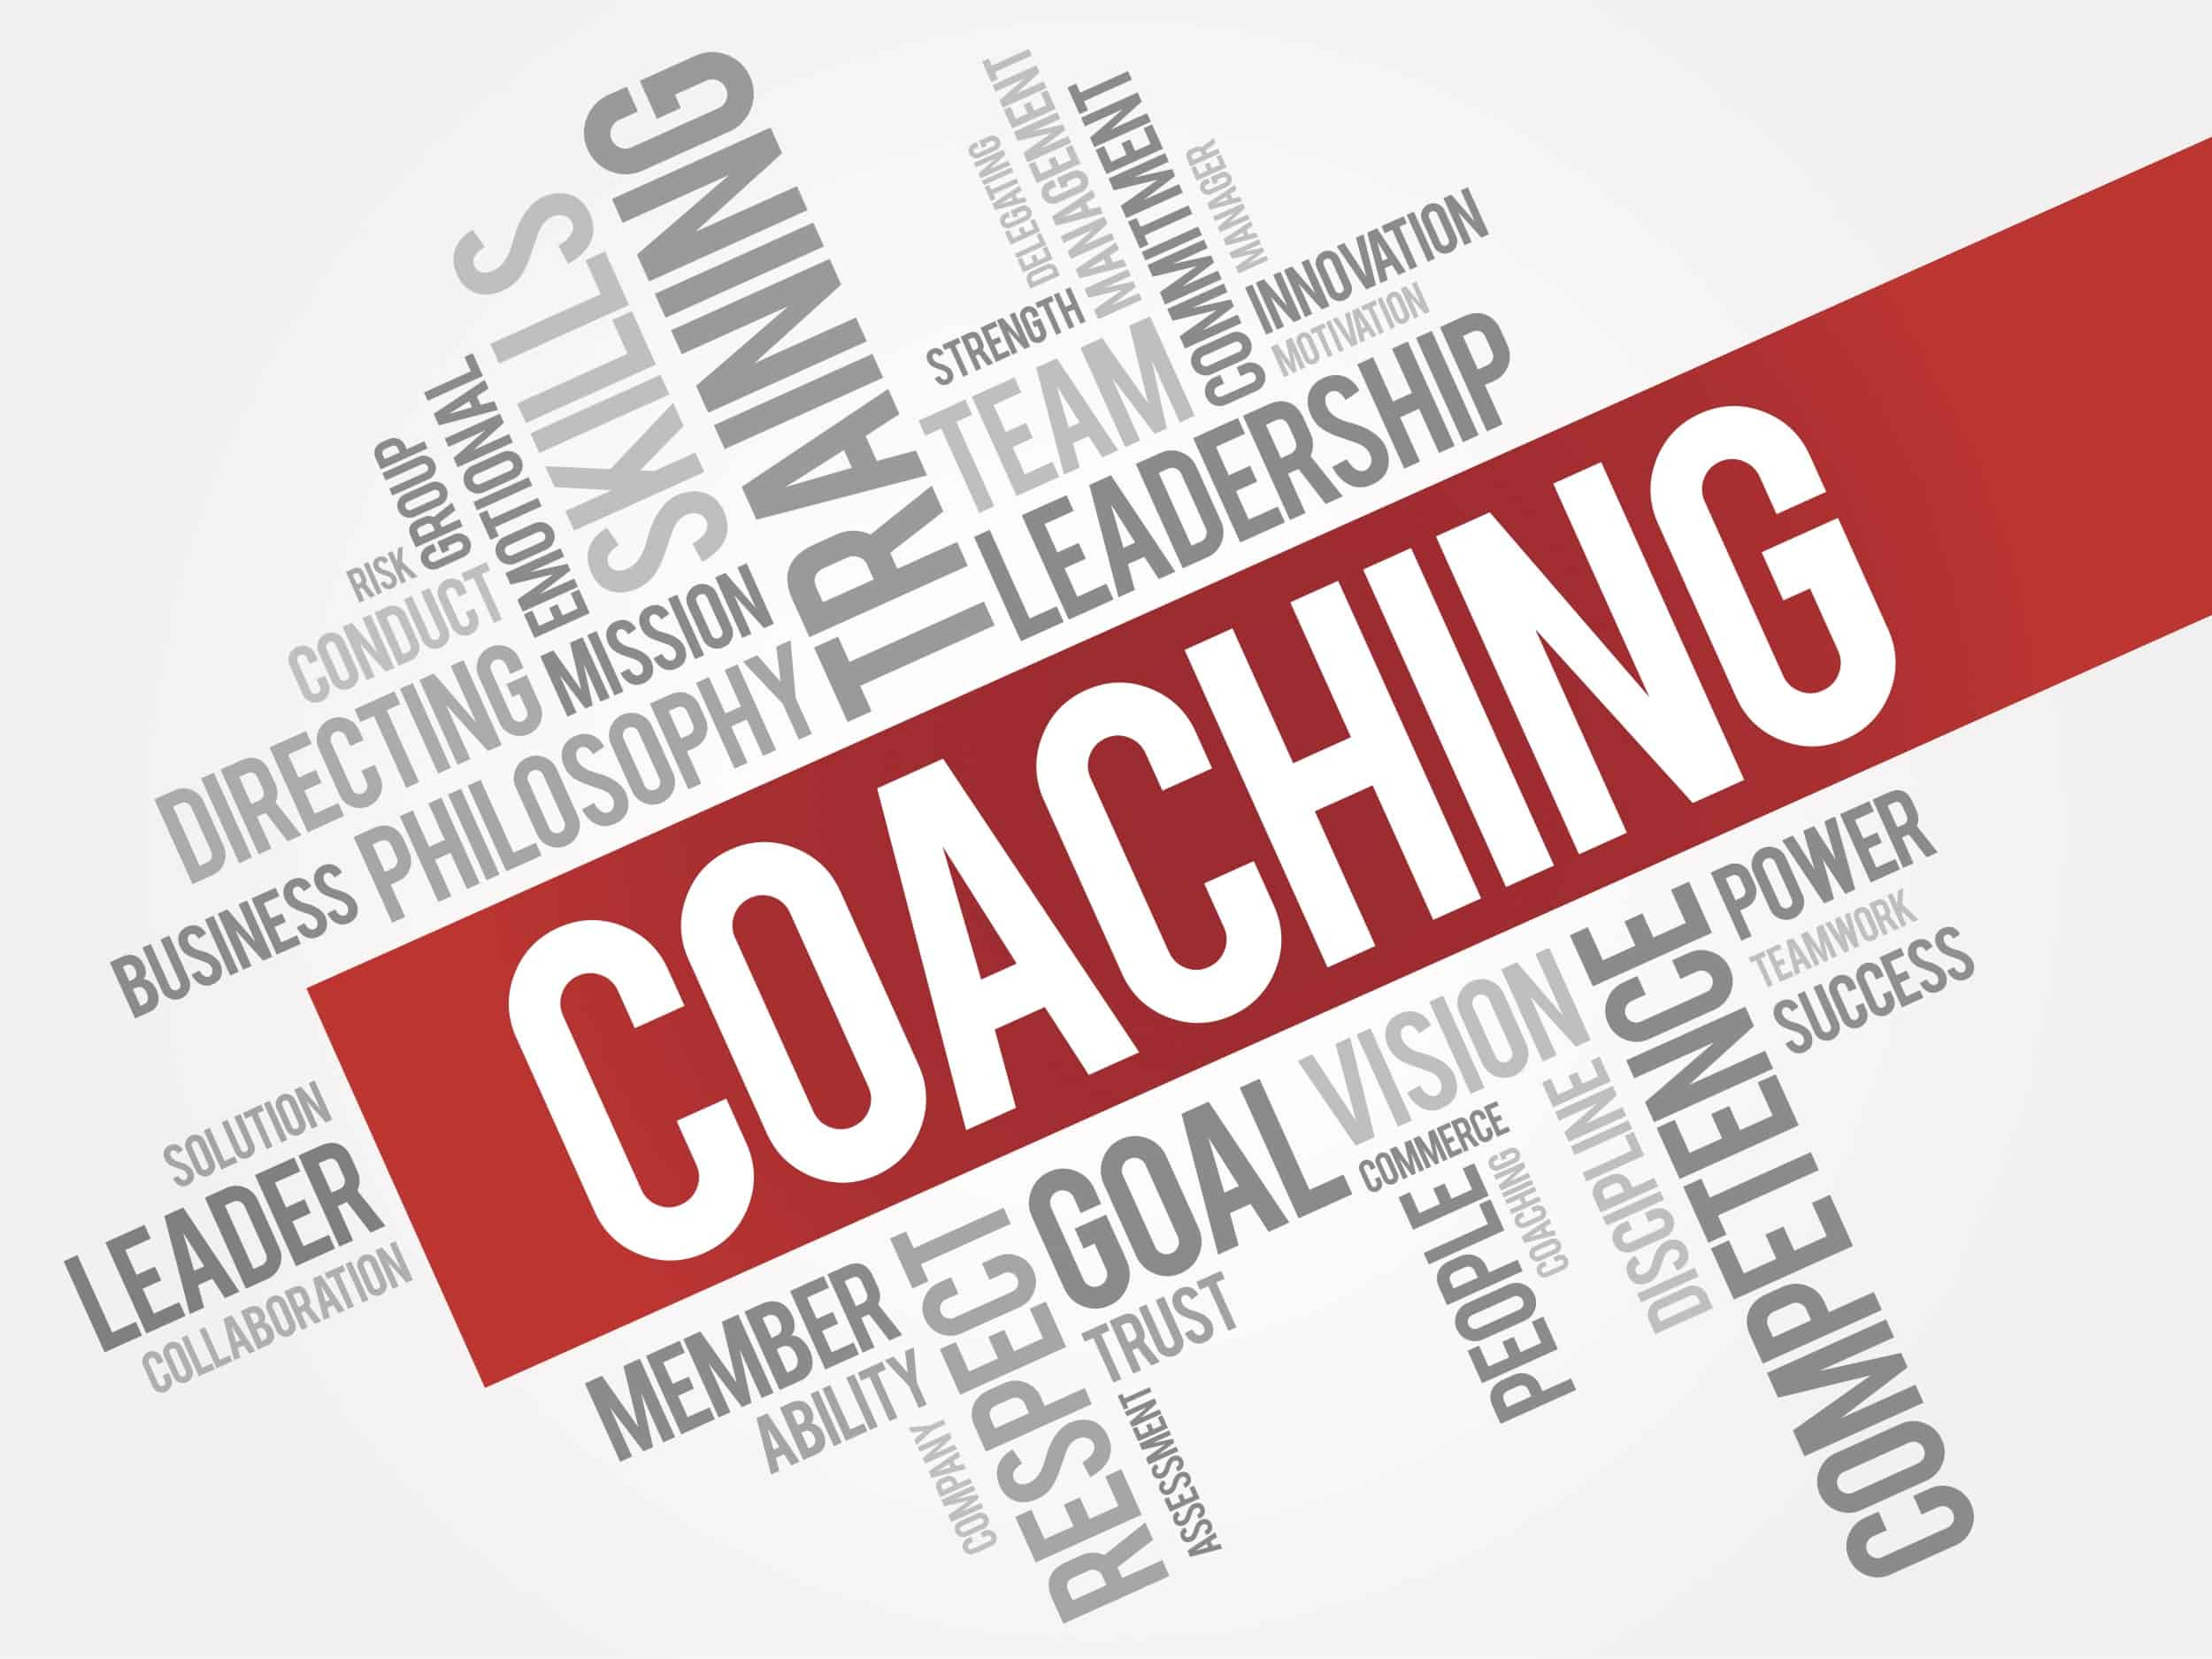 Executive coaching RETC Christophe Riou